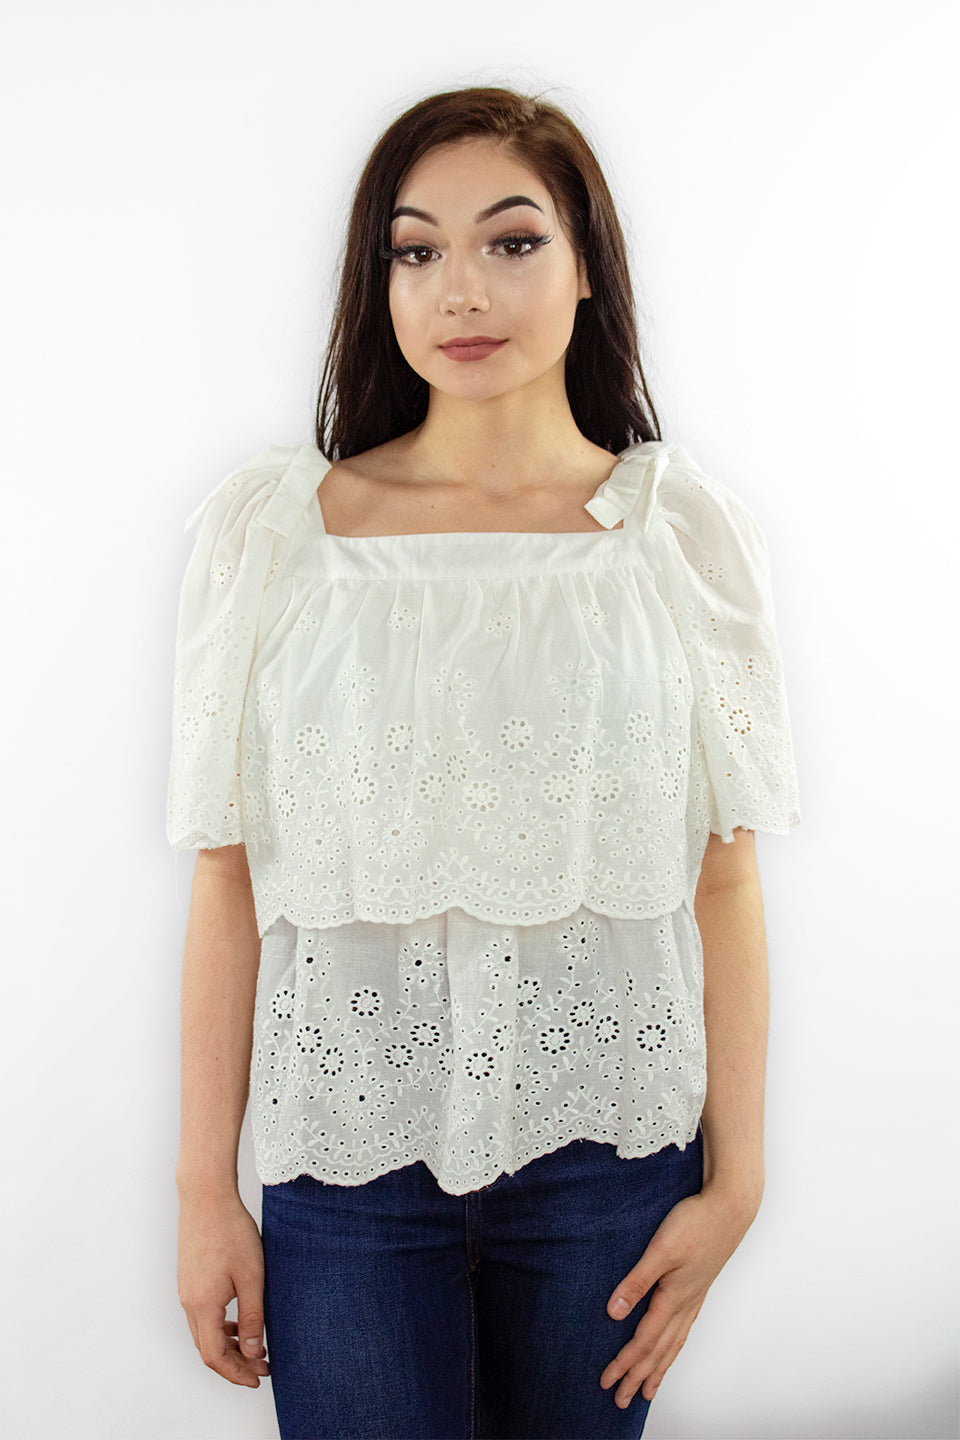 Pretty in Eyelet Top